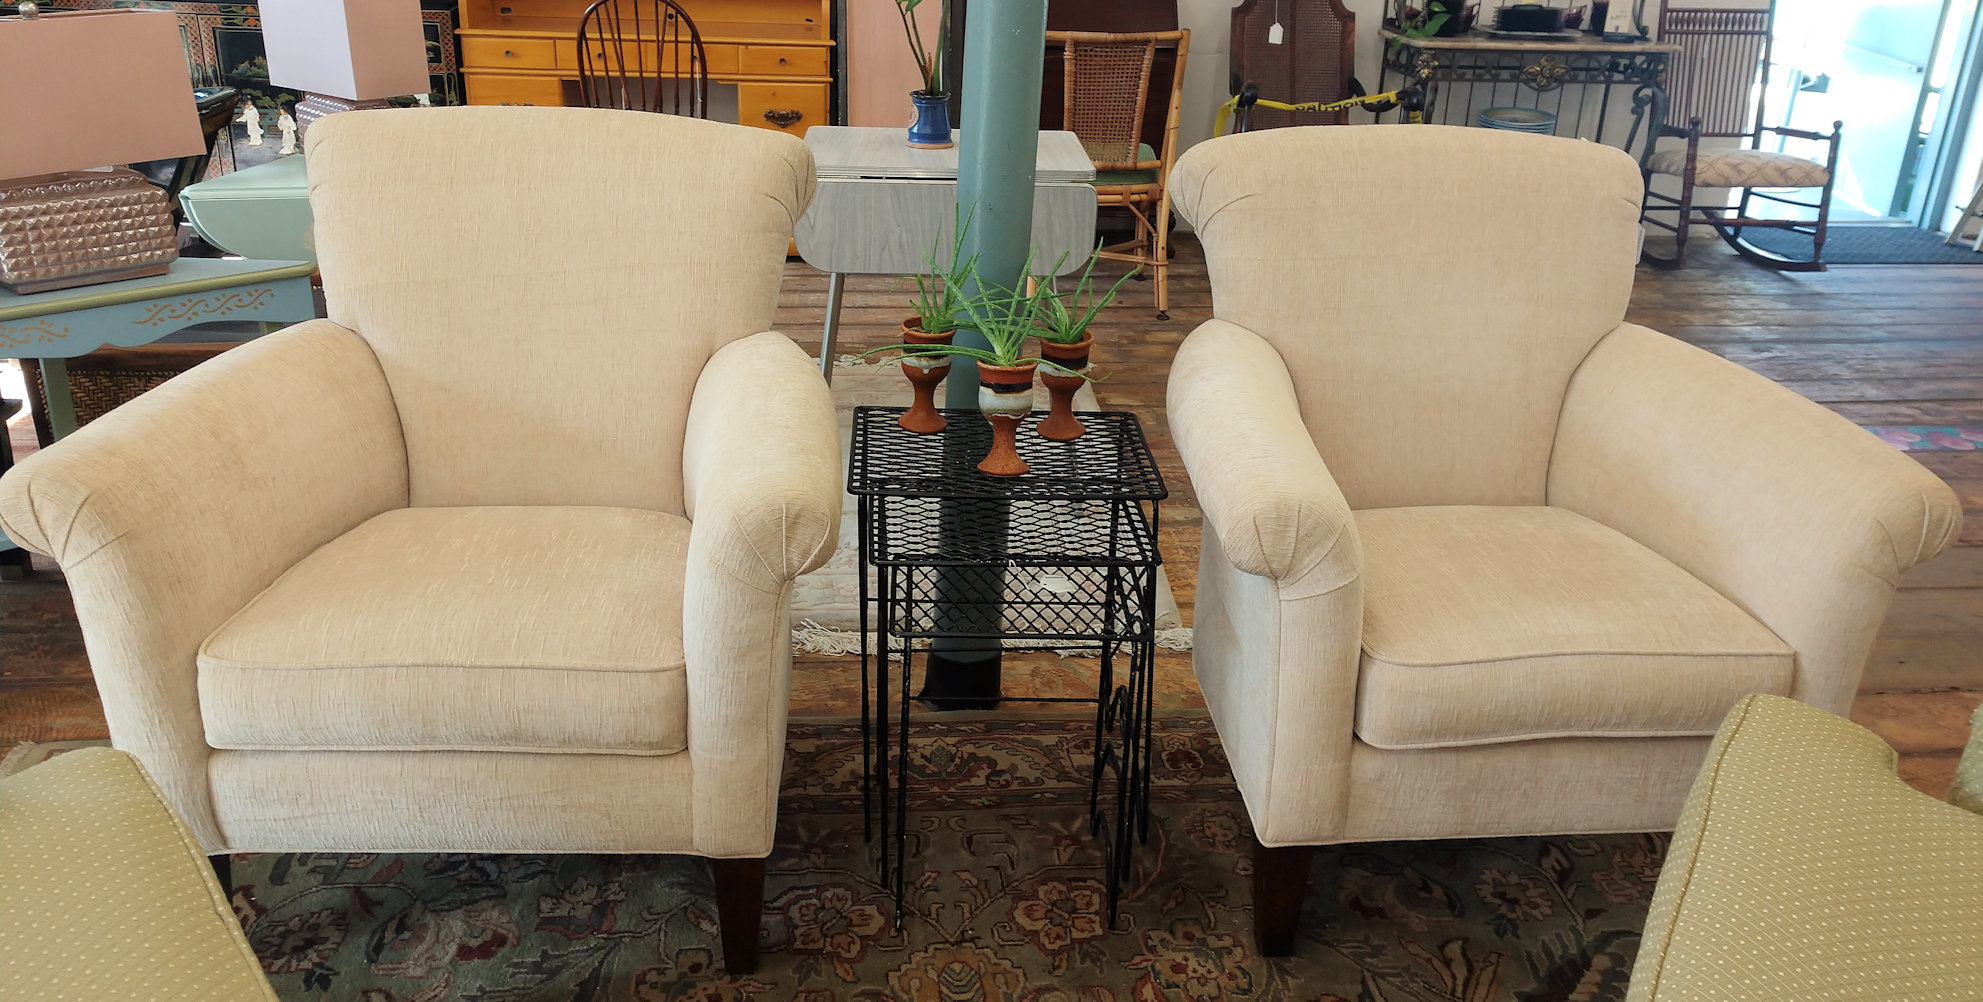 LR0259-pr.Chairs-Thomasville-ecru